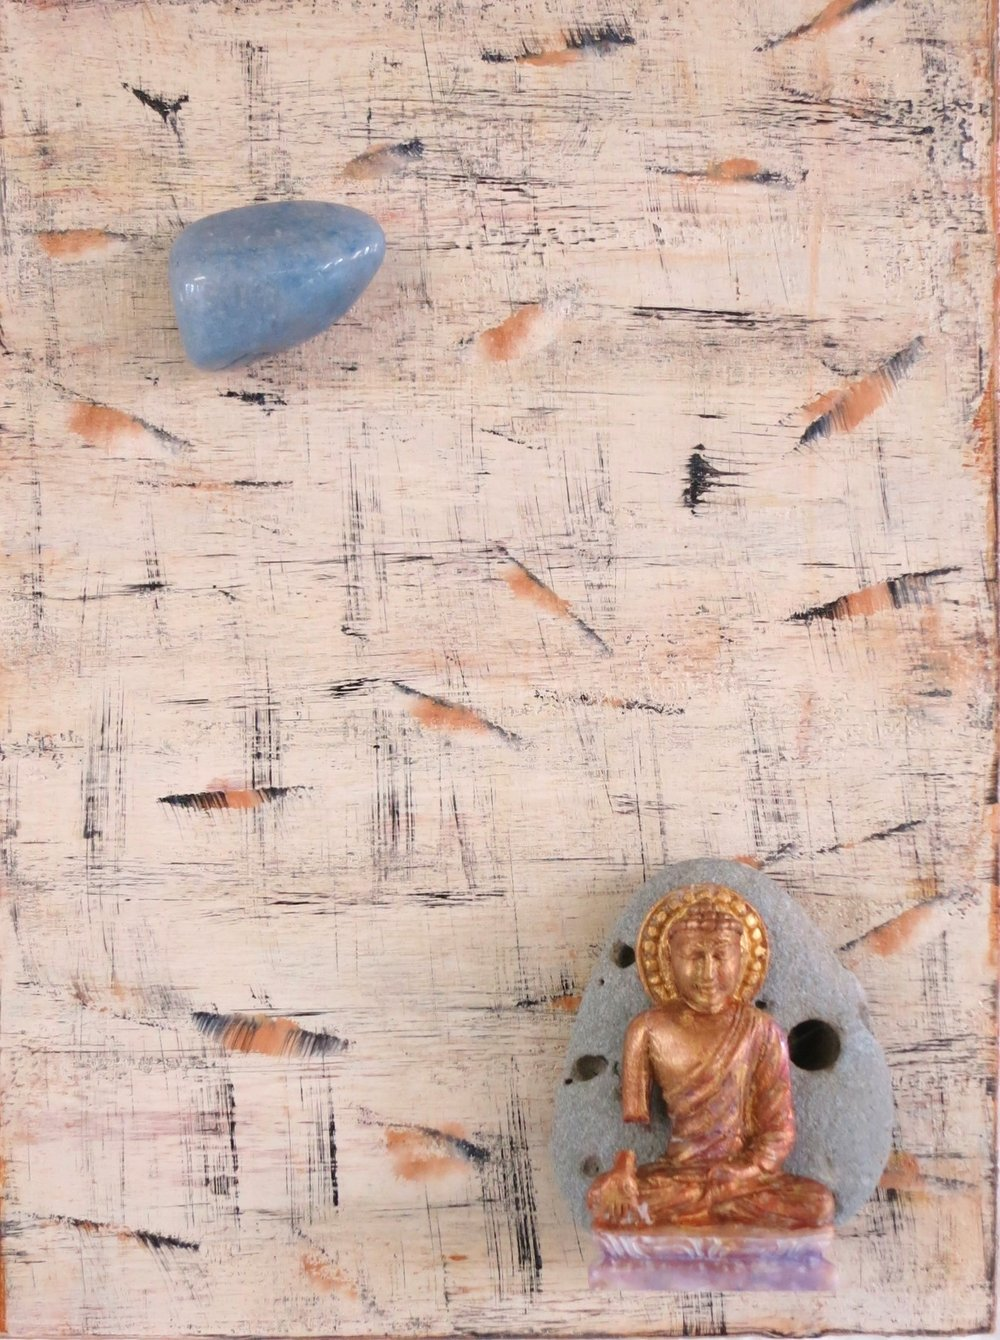 """""""External Chaos, Internal Calm"""", 2016  Buddha with Blue Lace Agate Acrylic, resin Buddha, Costa Rican sand stone on   6"""" x 8"""" on cradled wood panel Blue Lace Agate is a gentle, calming and protective stone that instills tranquility and grace."""